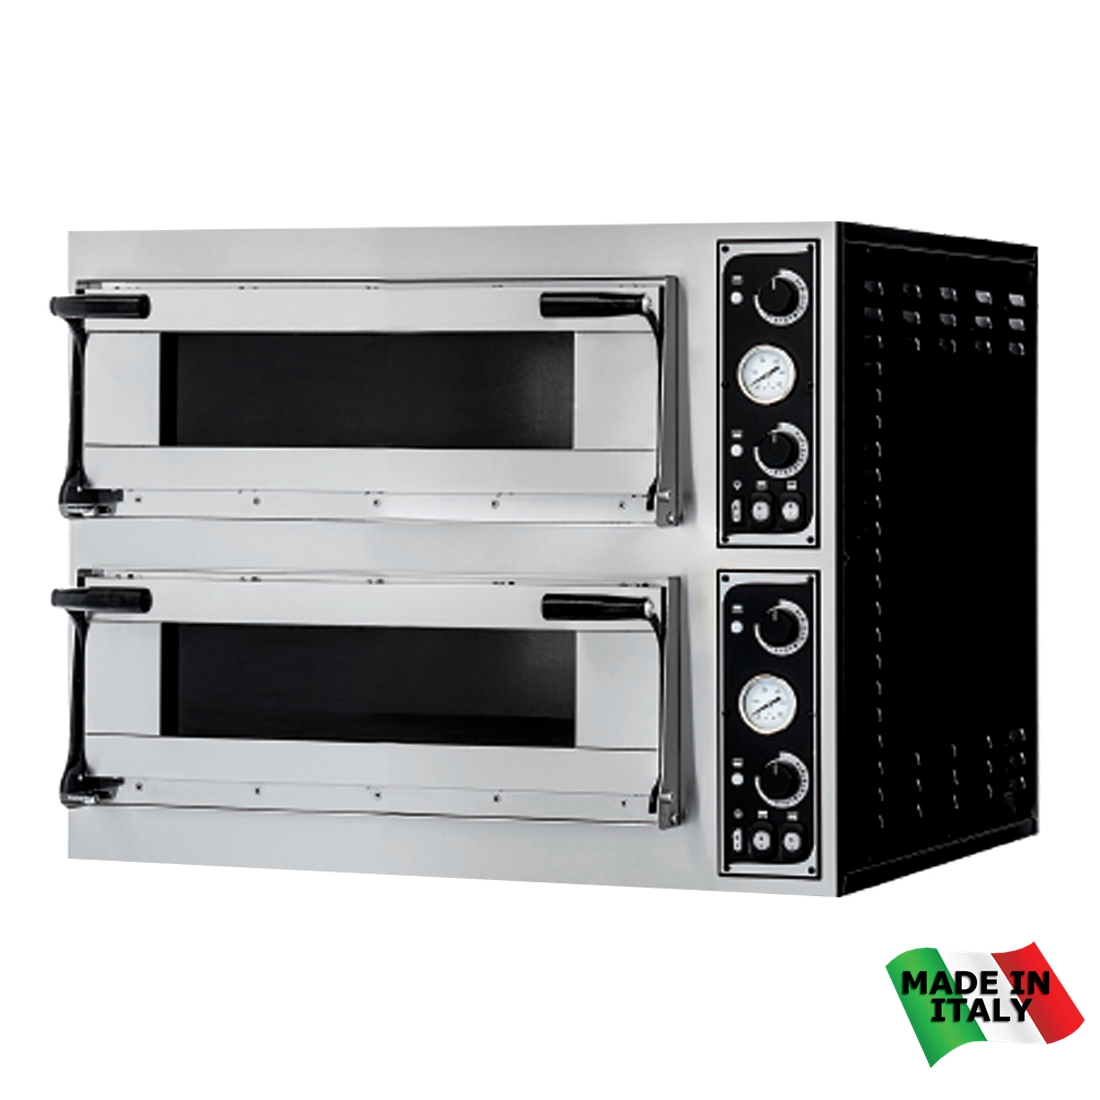 TP-2 Prisma Food Pizza Ovens Double  Deck 8 x 40cm